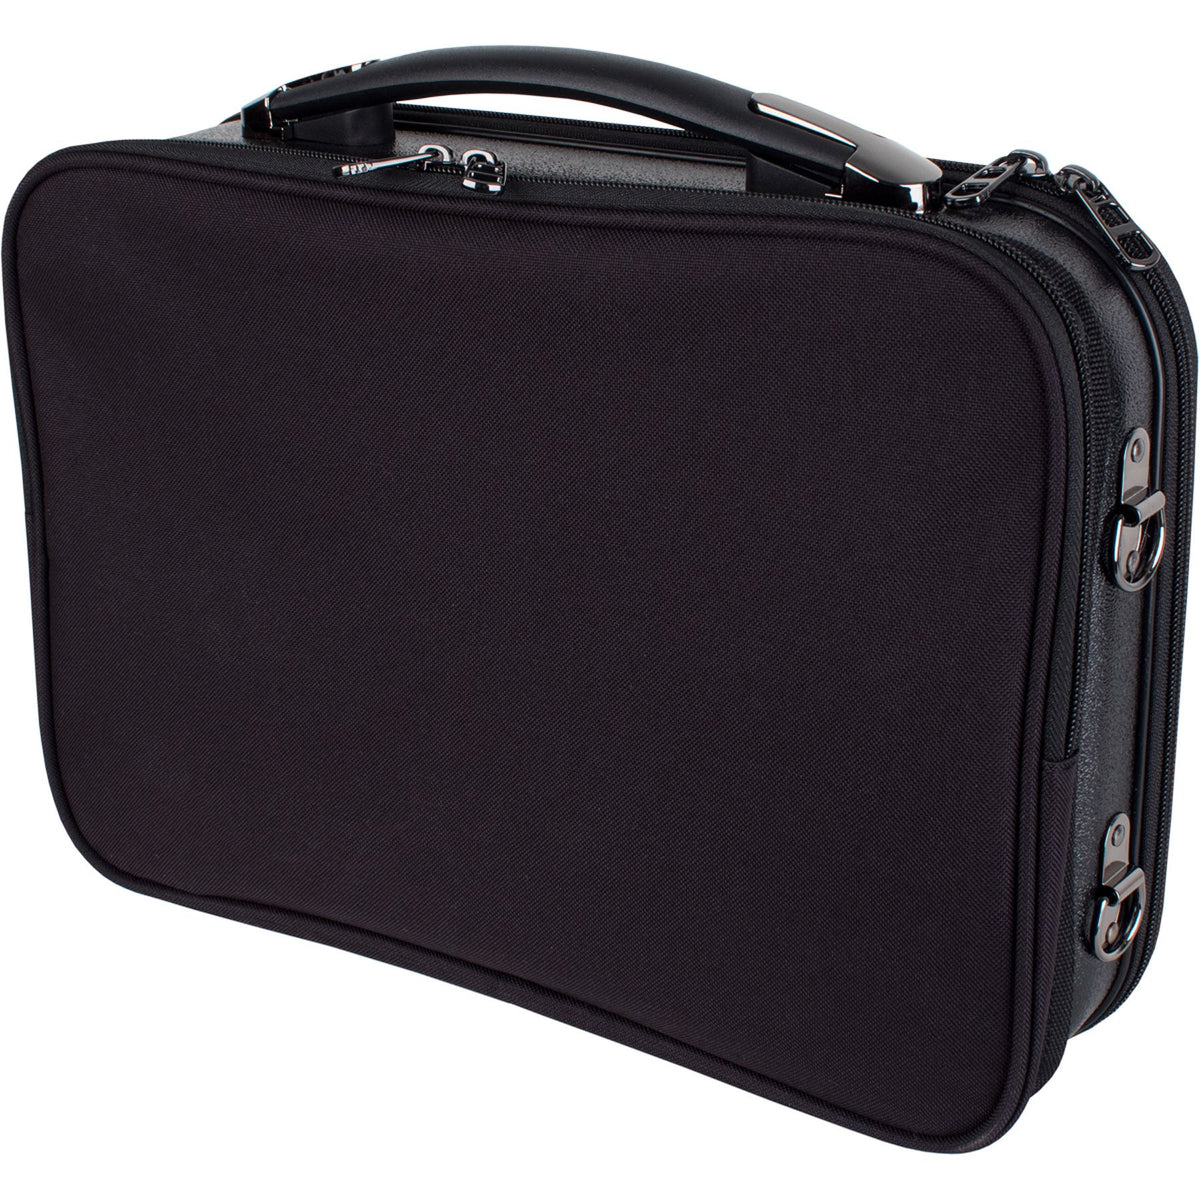 Protec - Bb Clarinet ZIP Case with Removable Music Pocket-Accessories-Protec-Music Elements